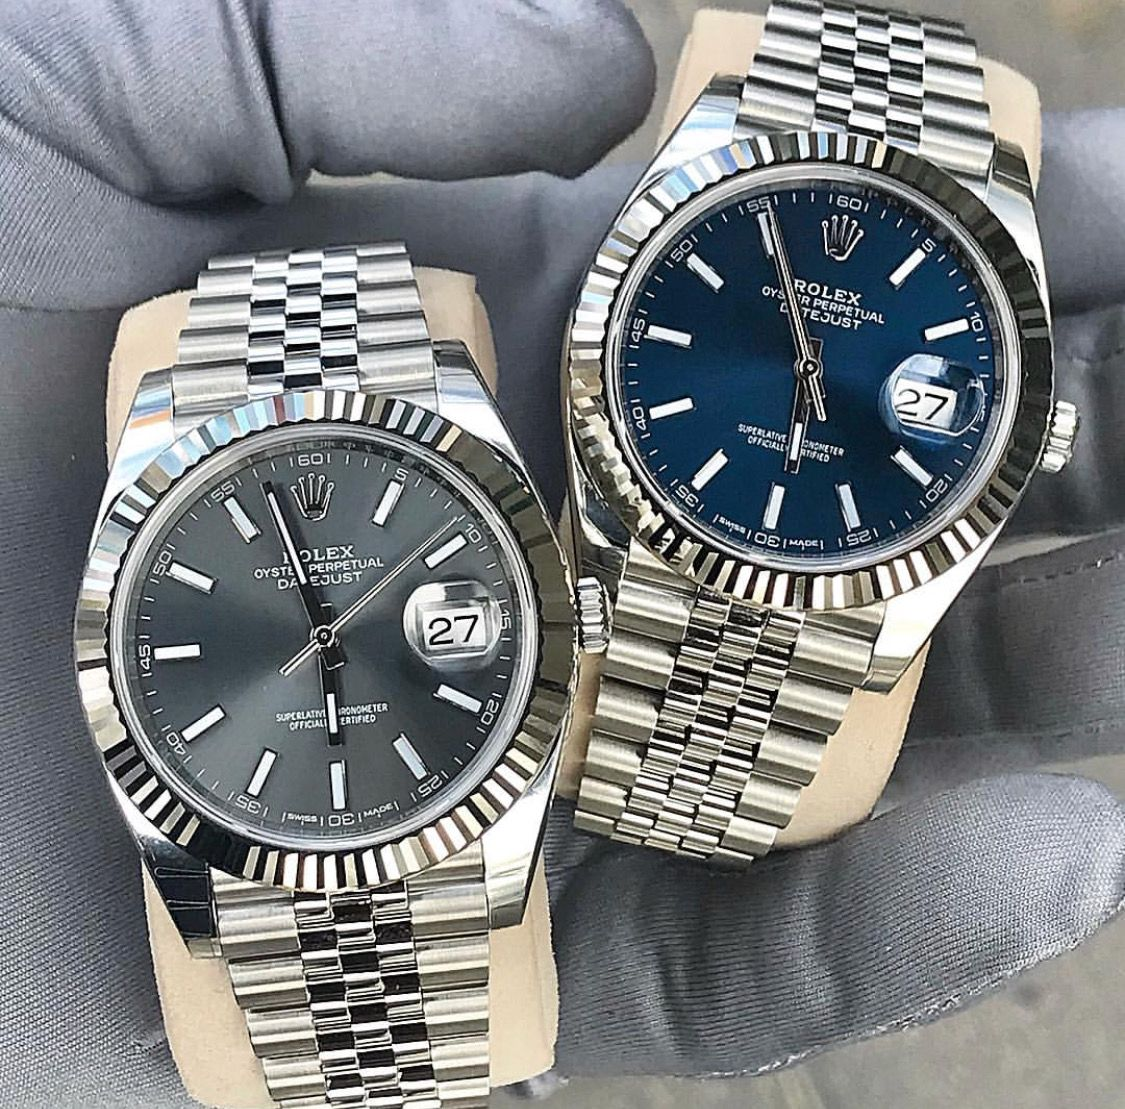 Rolex DateJust in Rhodium and Blue #luxurywatches